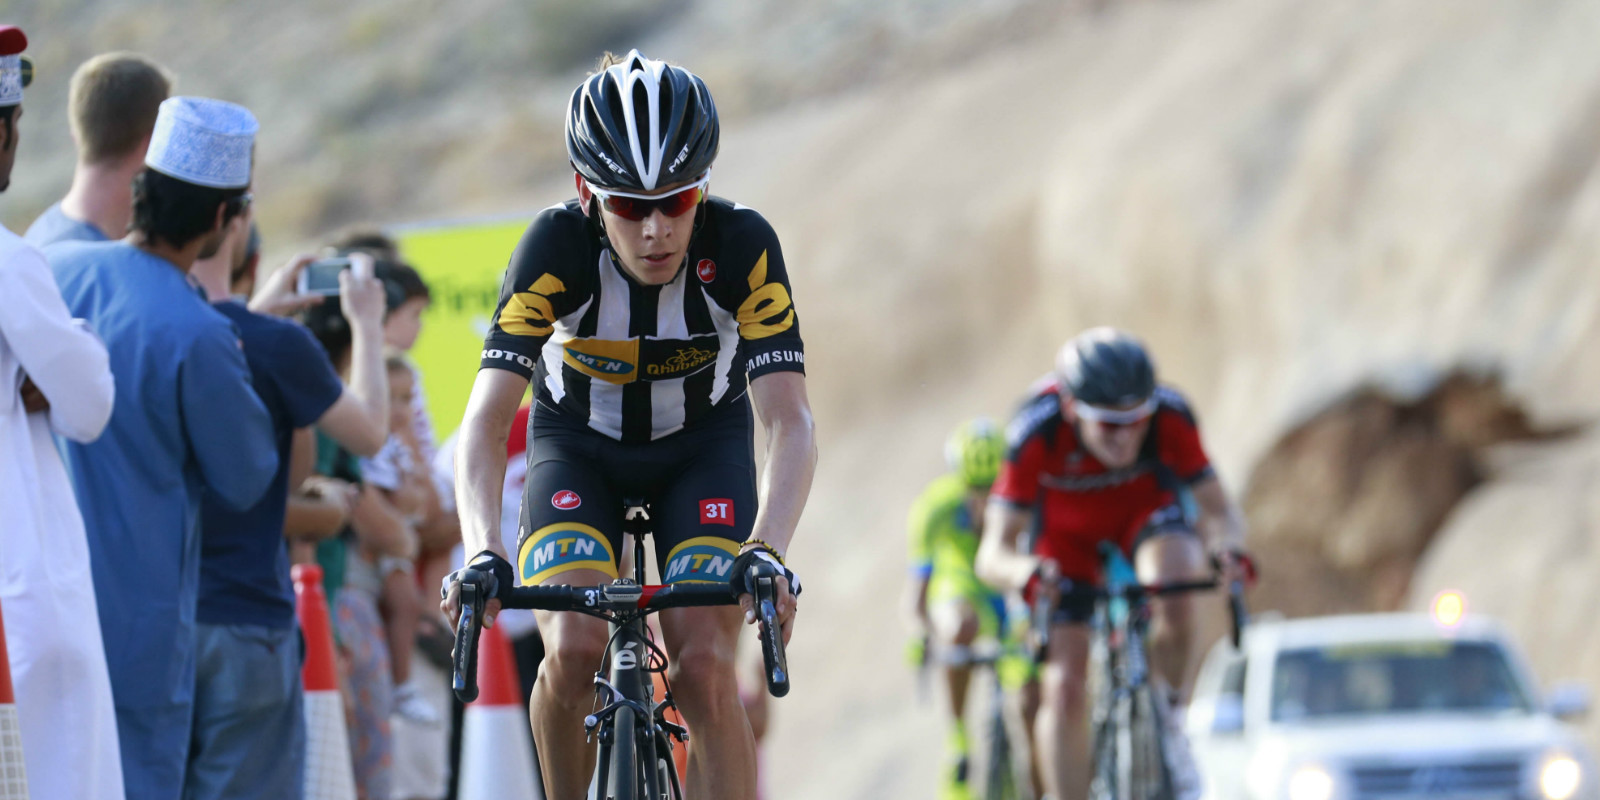 Meintjes still best of SA trio after stage 2